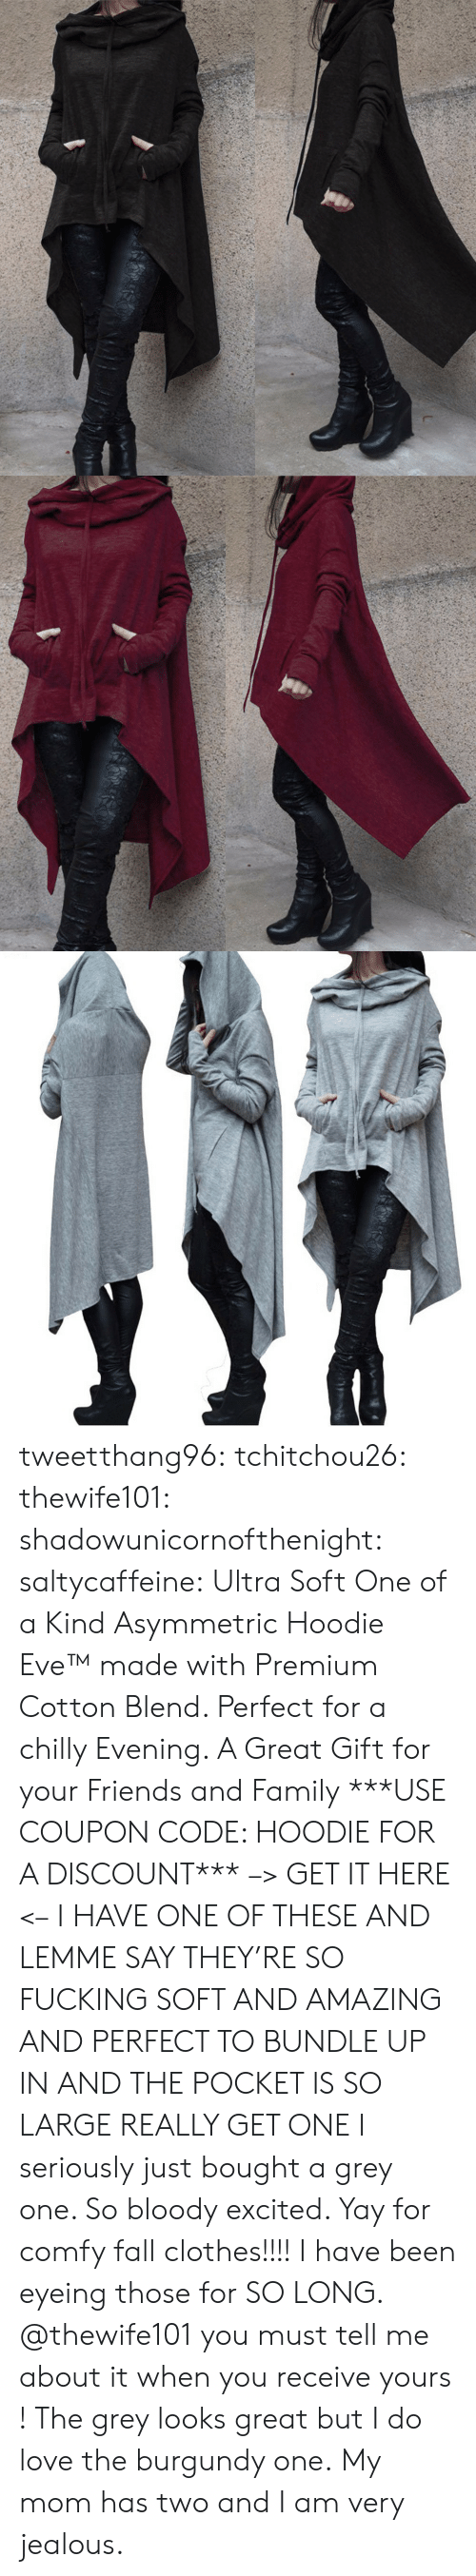 Just Bought: tweetthang96:  tchitchou26: thewife101:  shadowunicornofthenight:  saltycaffeine:  Ultra Soft One of a Kind Asymmetric Hoodie Eve™made with Premium Cotton Blend. Perfect for a chilly Evening. A Great Gift for your Friends and Family ***USE COUPON CODE: HOODIE FOR A DISCOUNT*** –> GET IT HERE <–   I HAVE ONE OF THESE AND LEMME SAY THEY'RE SO FUCKING SOFT AND AMAZING AND PERFECT TO BUNDLE UP IN AND THE POCKET IS SO LARGE REALLY GET ONE   I seriously just bought a grey one. So bloody excited. Yay for comfy fall clothes!!!!   I have been eyeing those for SO LONG. @thewife101 you must tell me about it when you receive yours ! The grey looks great but I do love the burgundy one.   My mom has two and I am very jealous.